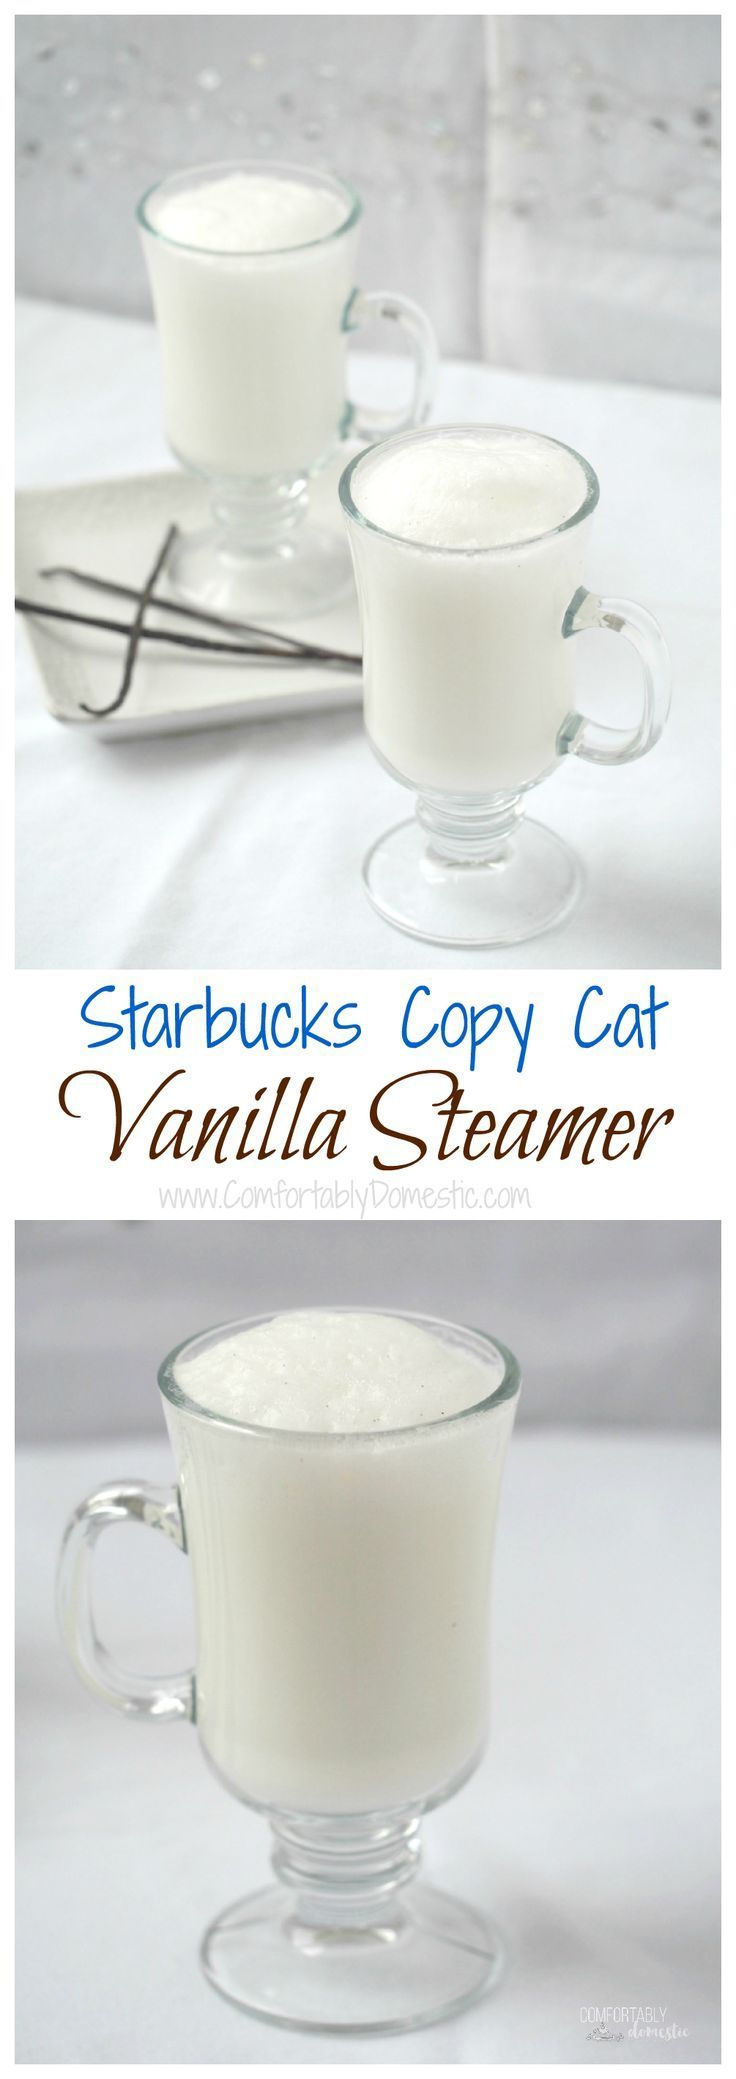 A vanilla steamer combines homemade vanilla bean syrup with steamy milk, imparting a whisper of comfort in every sip. A Starbucks Copycat recipe!